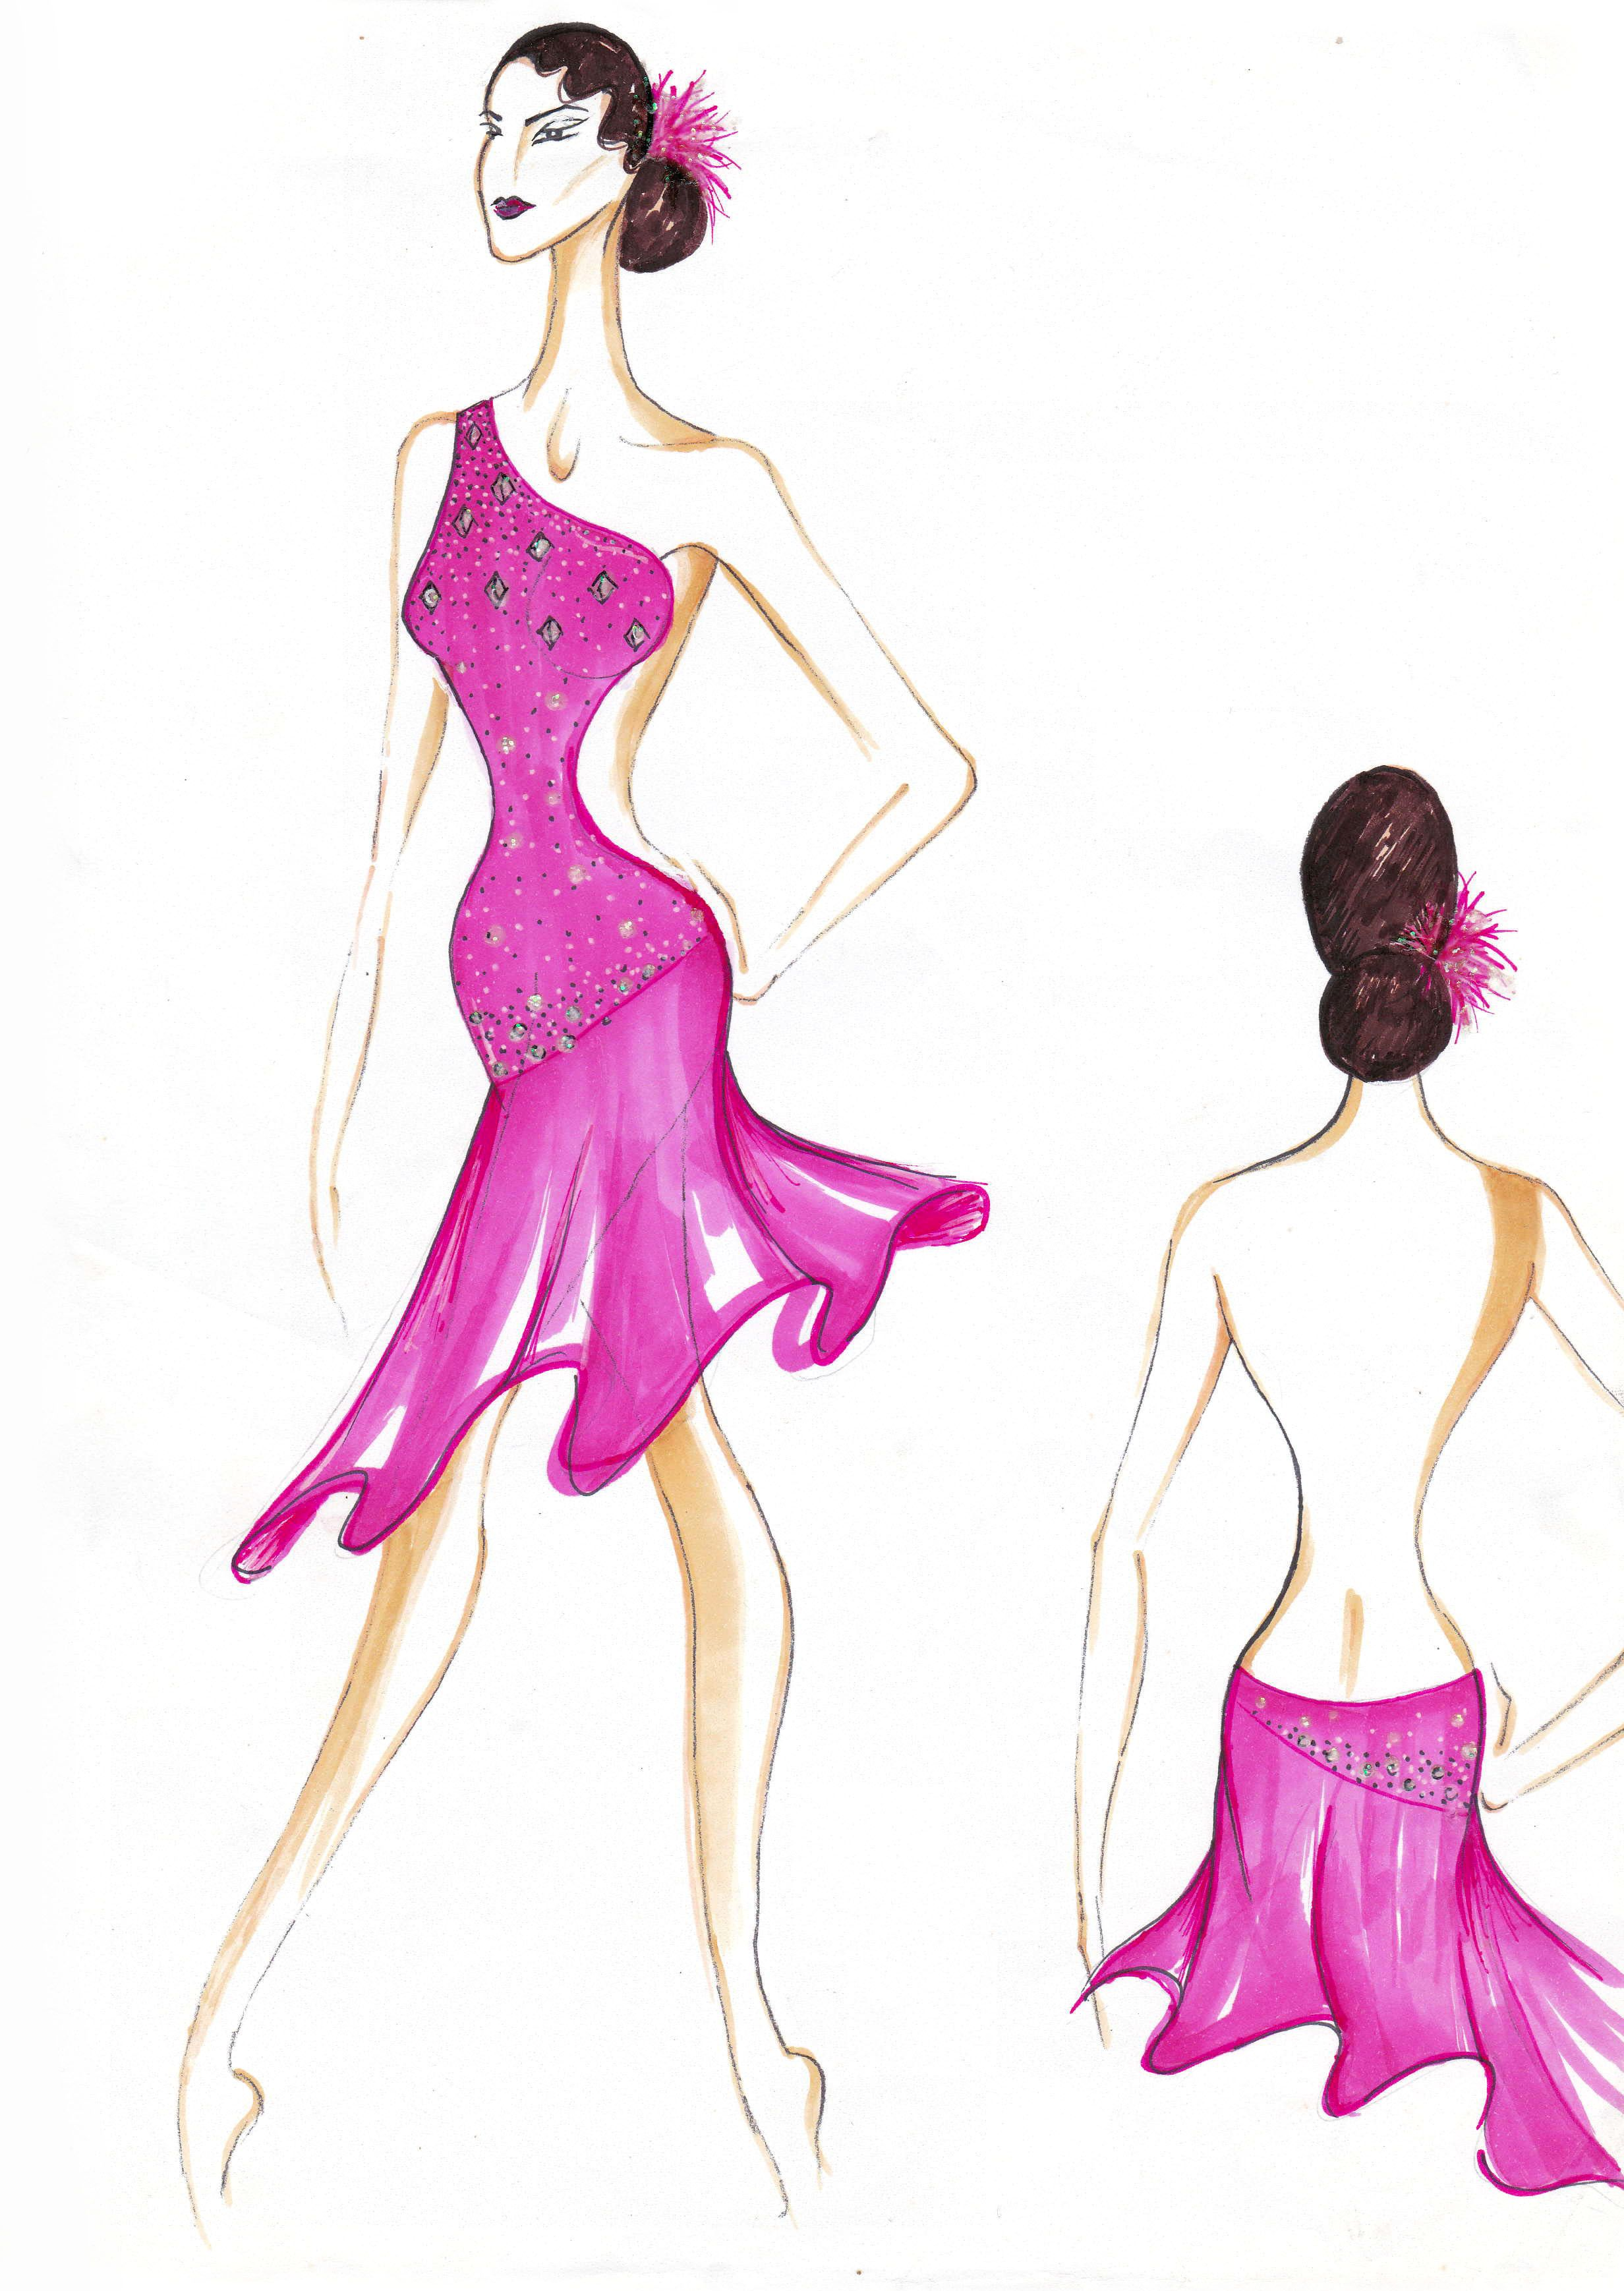 Pin by Suzanne Lim on Latin & Ballroom Costume Illustration in 2019 ...